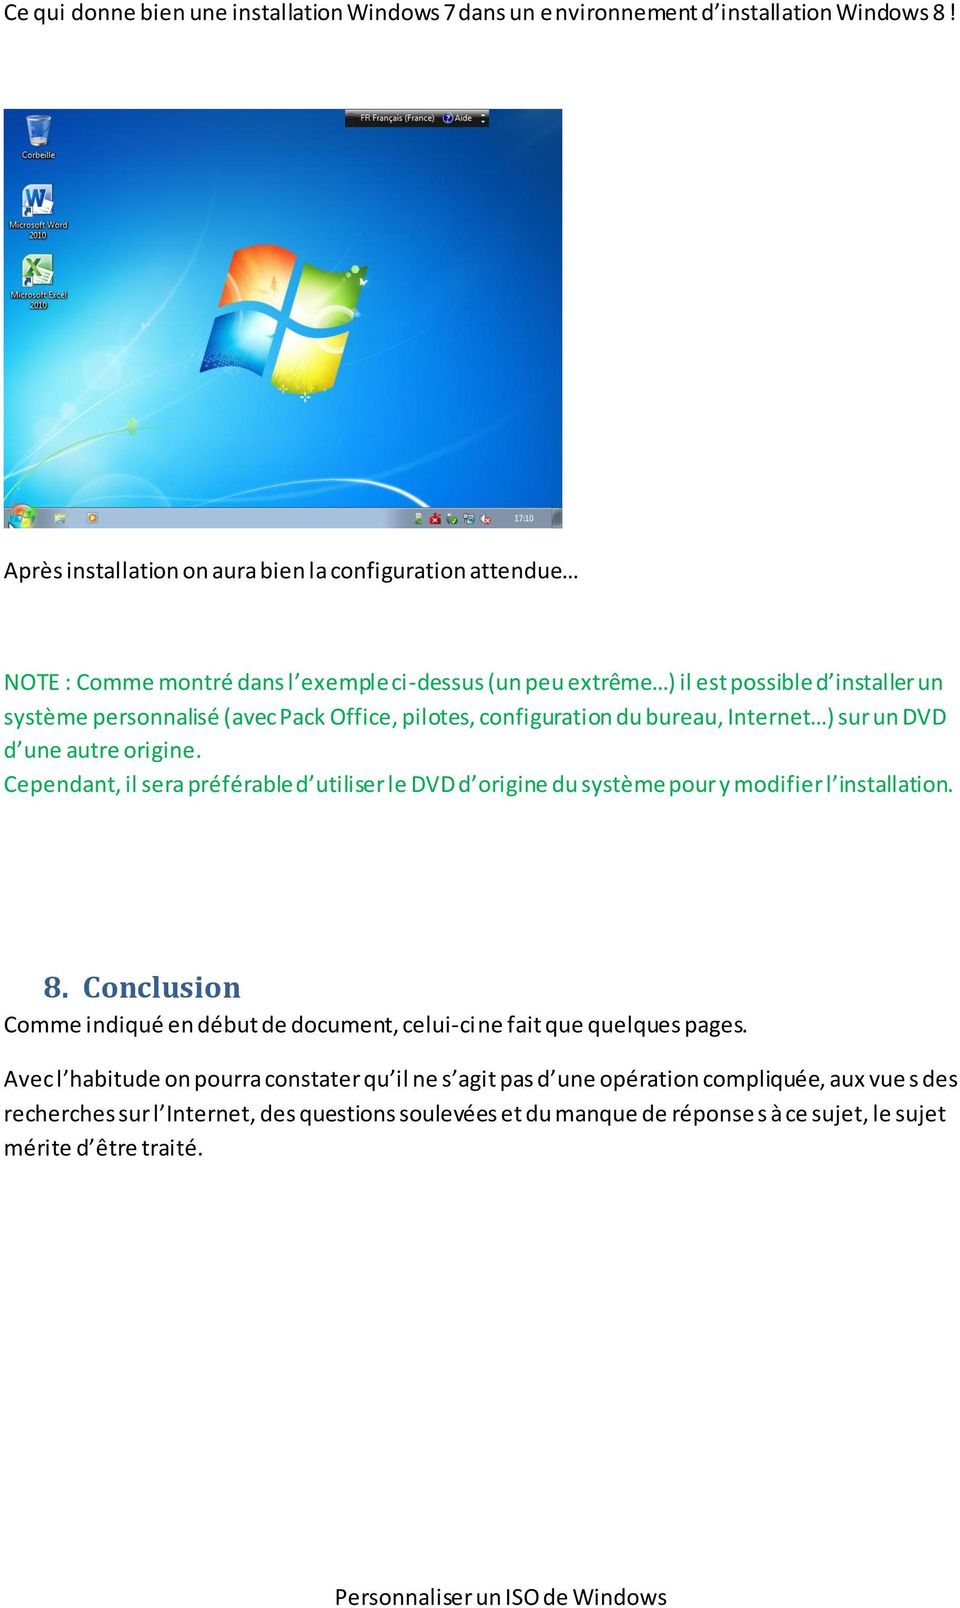 personnaliser Windows 8 installation dvd